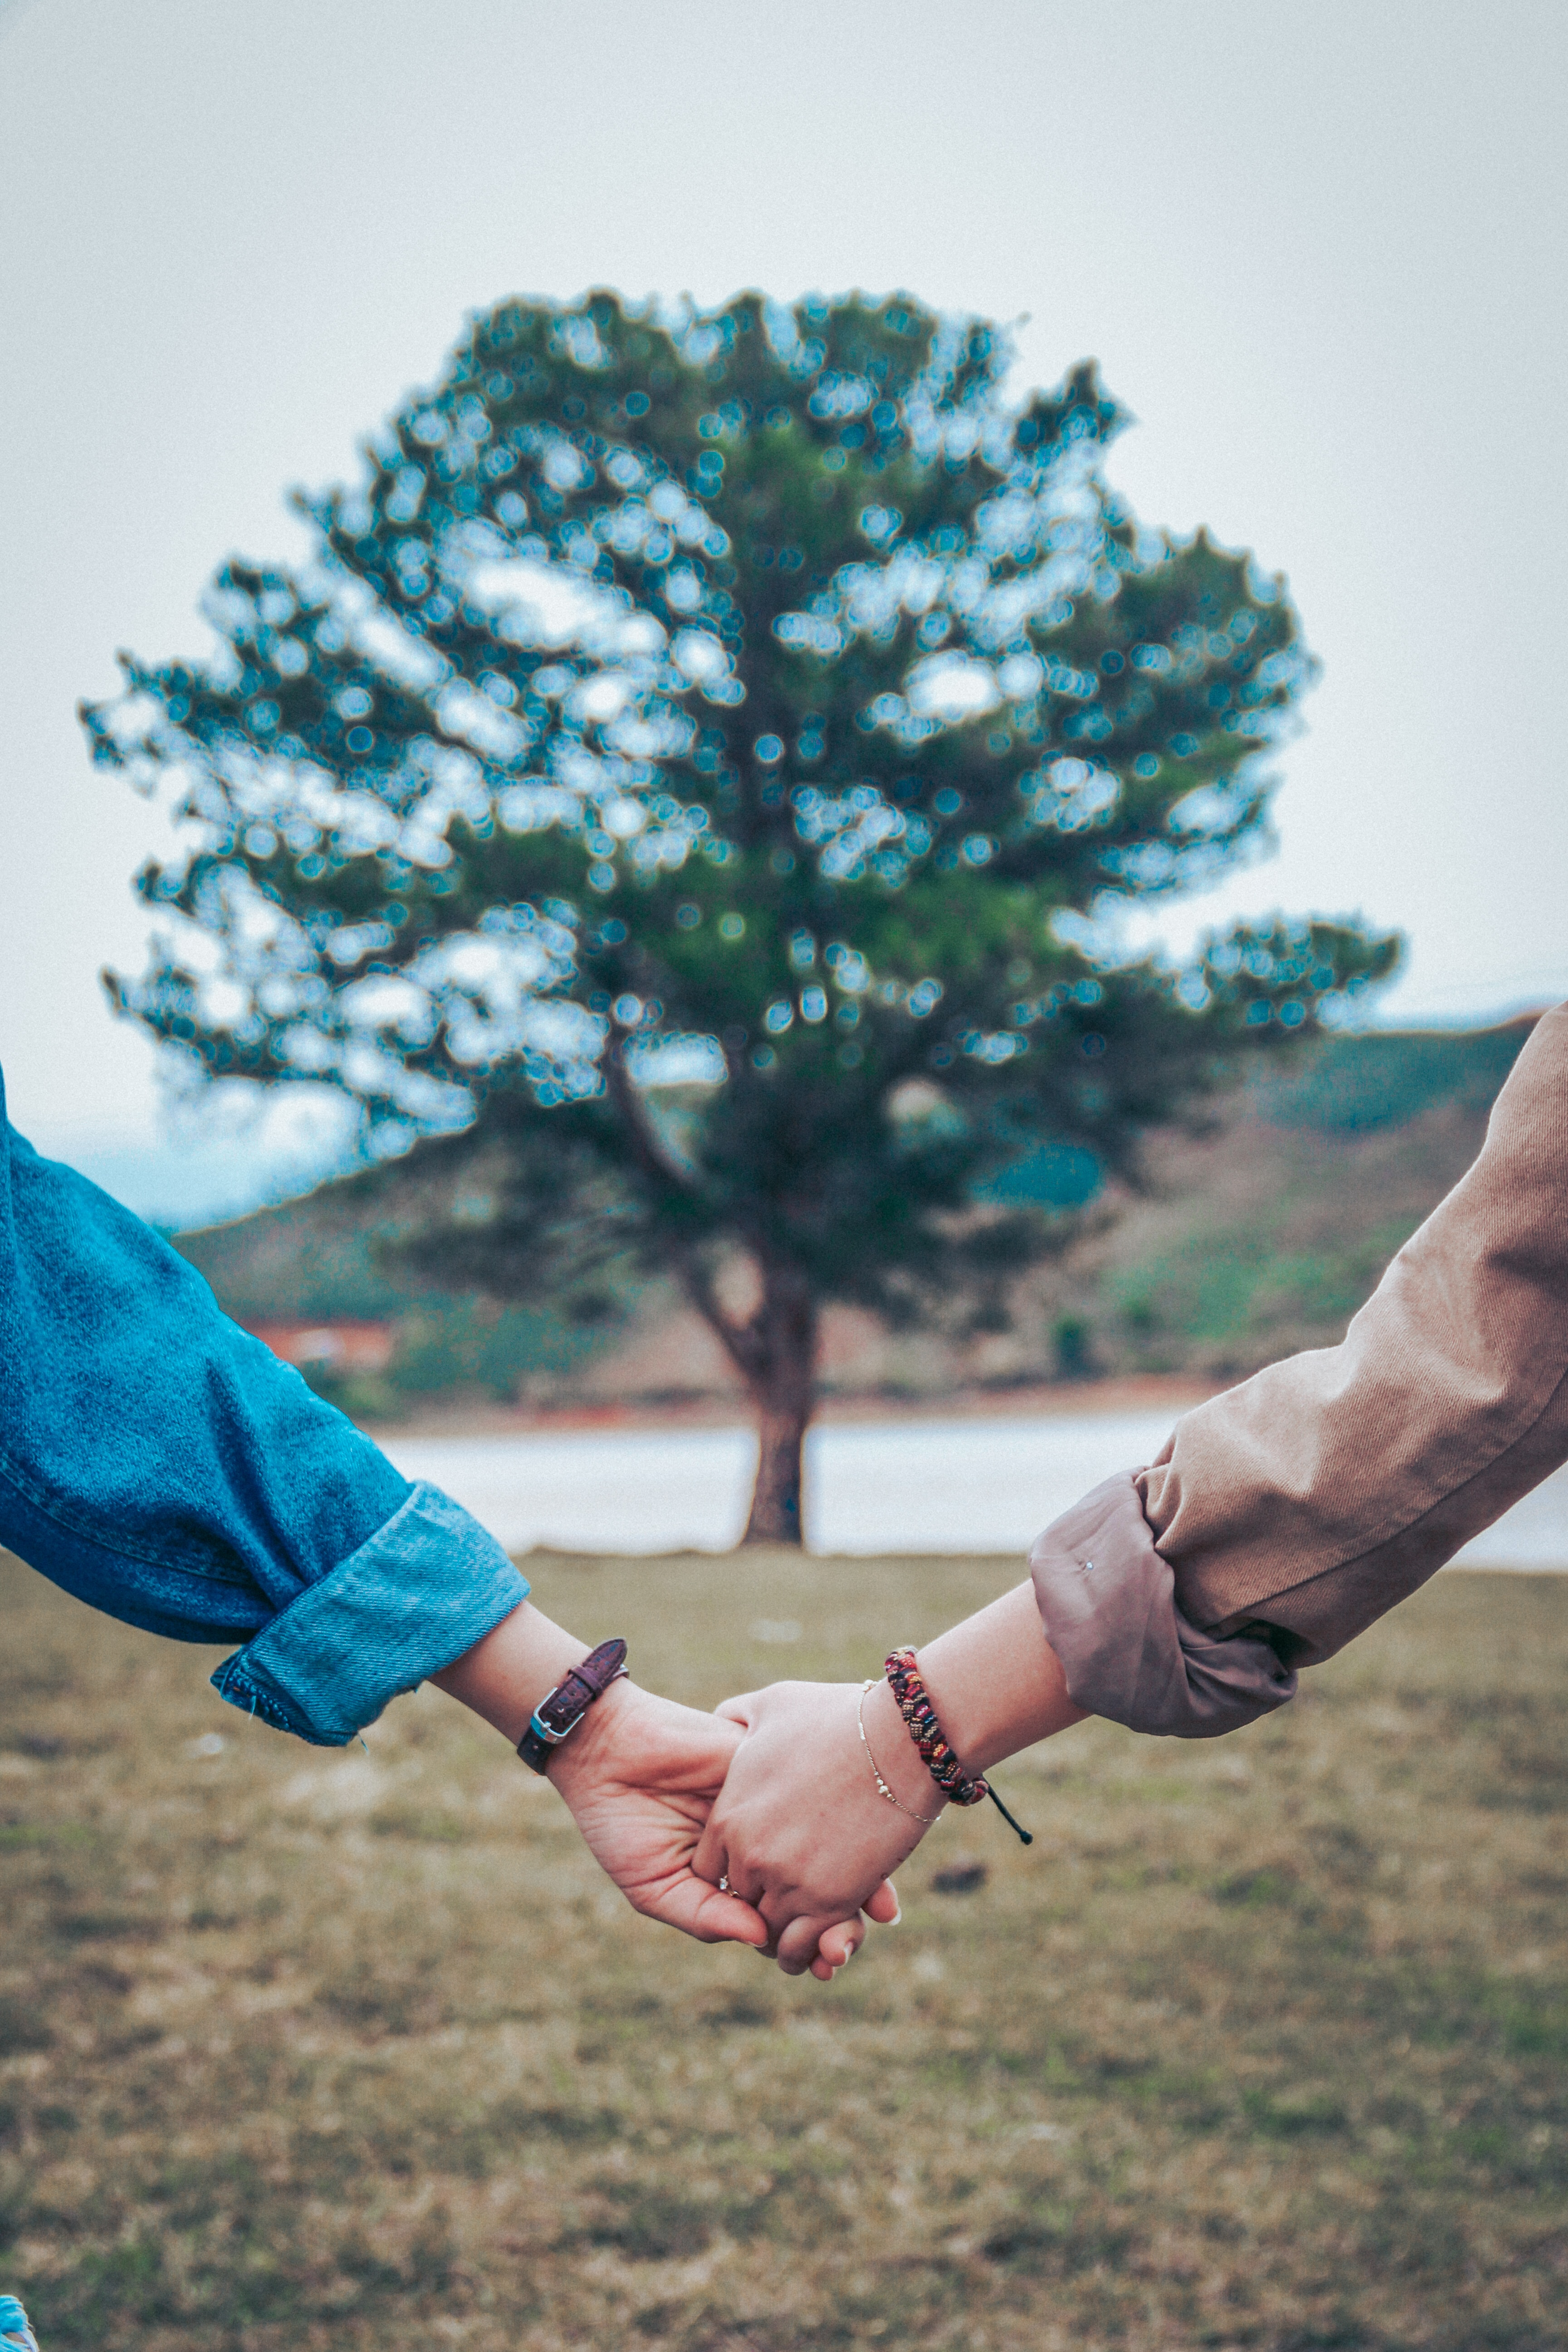 Unleash your creativity and remix this image!Unsplash (Public Domain) #hands #couple #love #people #valentinesday #freetoedit